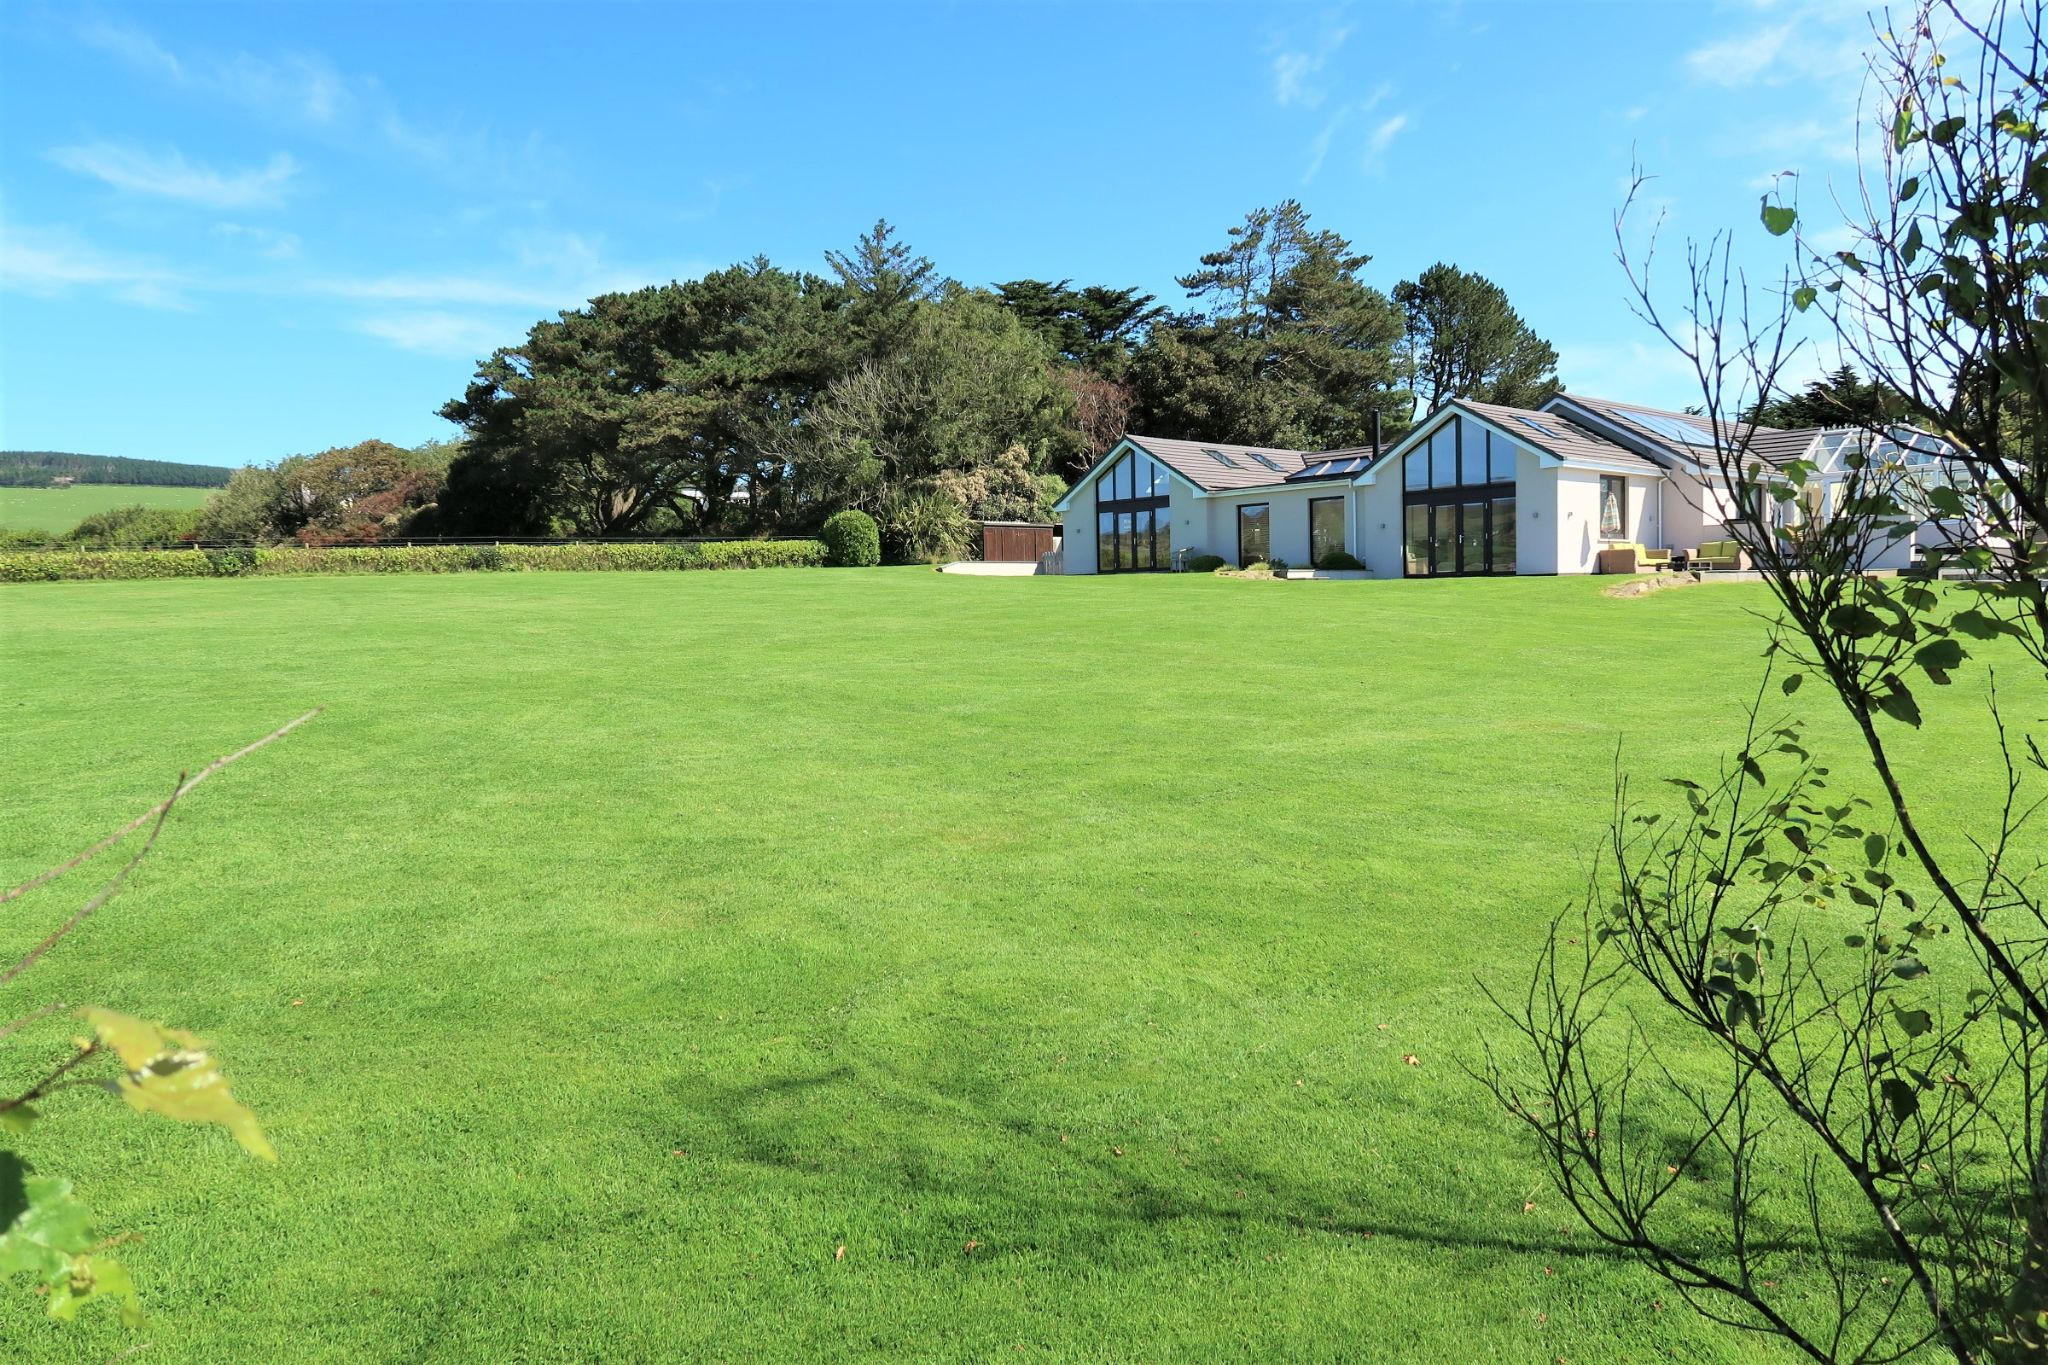 4 bedroom detached house SSTC in Colby - Photograph 30